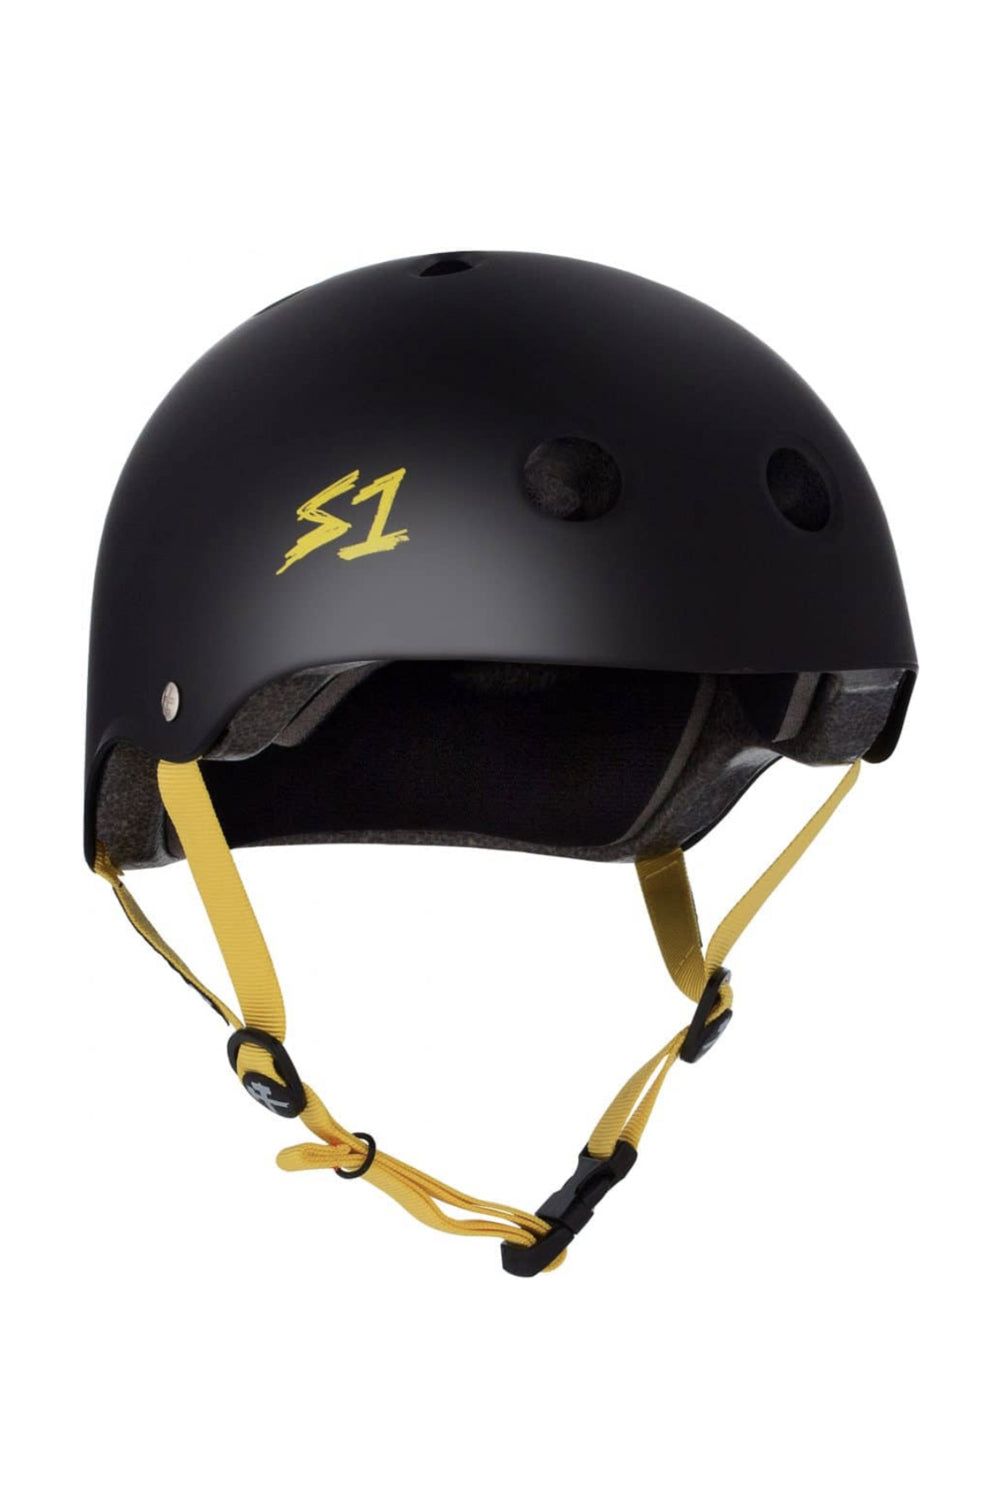 S One Lifer Helmet - Black Matte / Yellow Straps